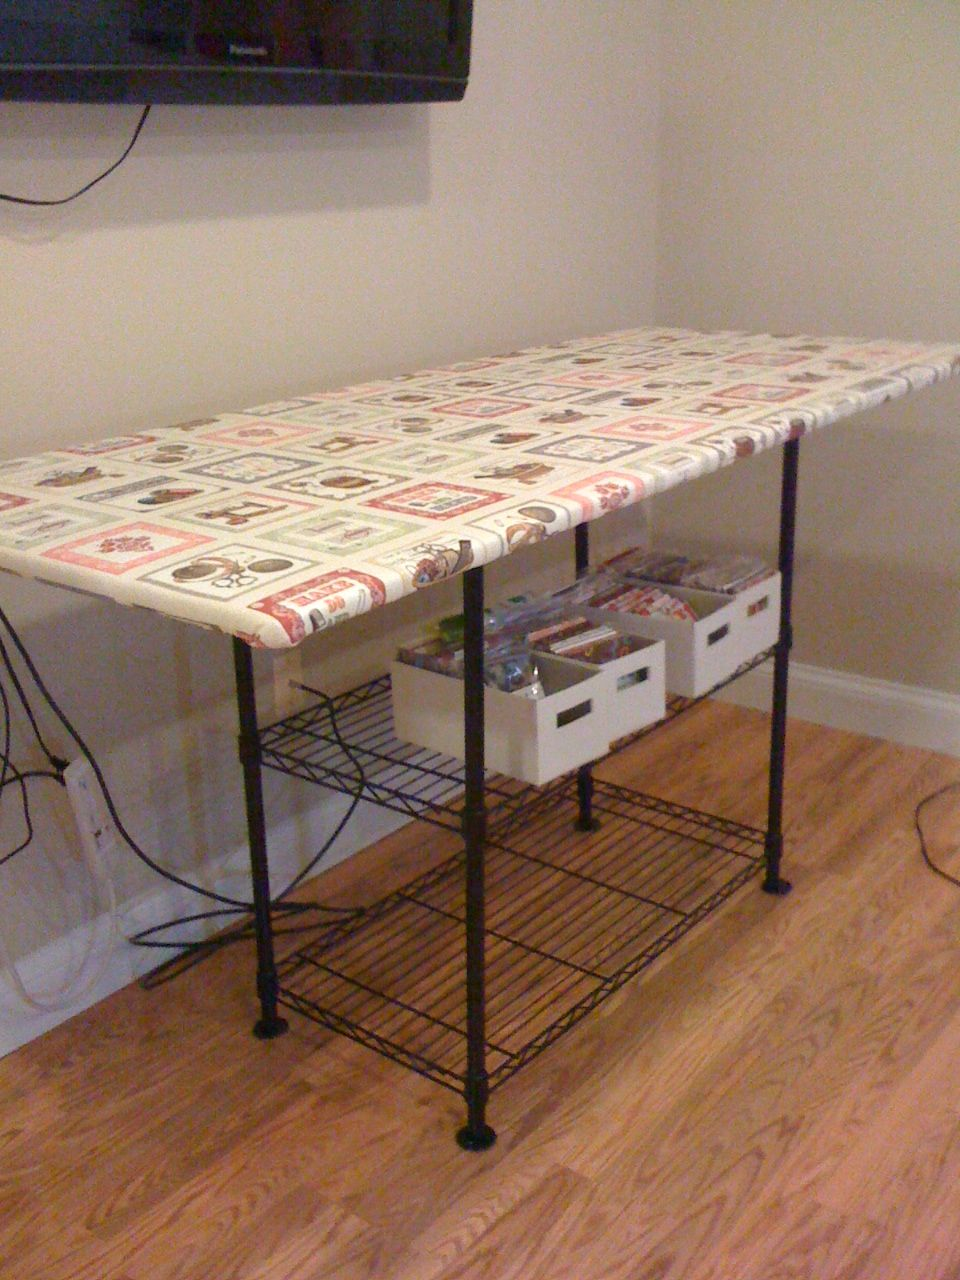 Karen's Sewing Room: Ironing Station | food | Pinterest | Ironing ... : wide ironing board for quilting - Adamdwight.com